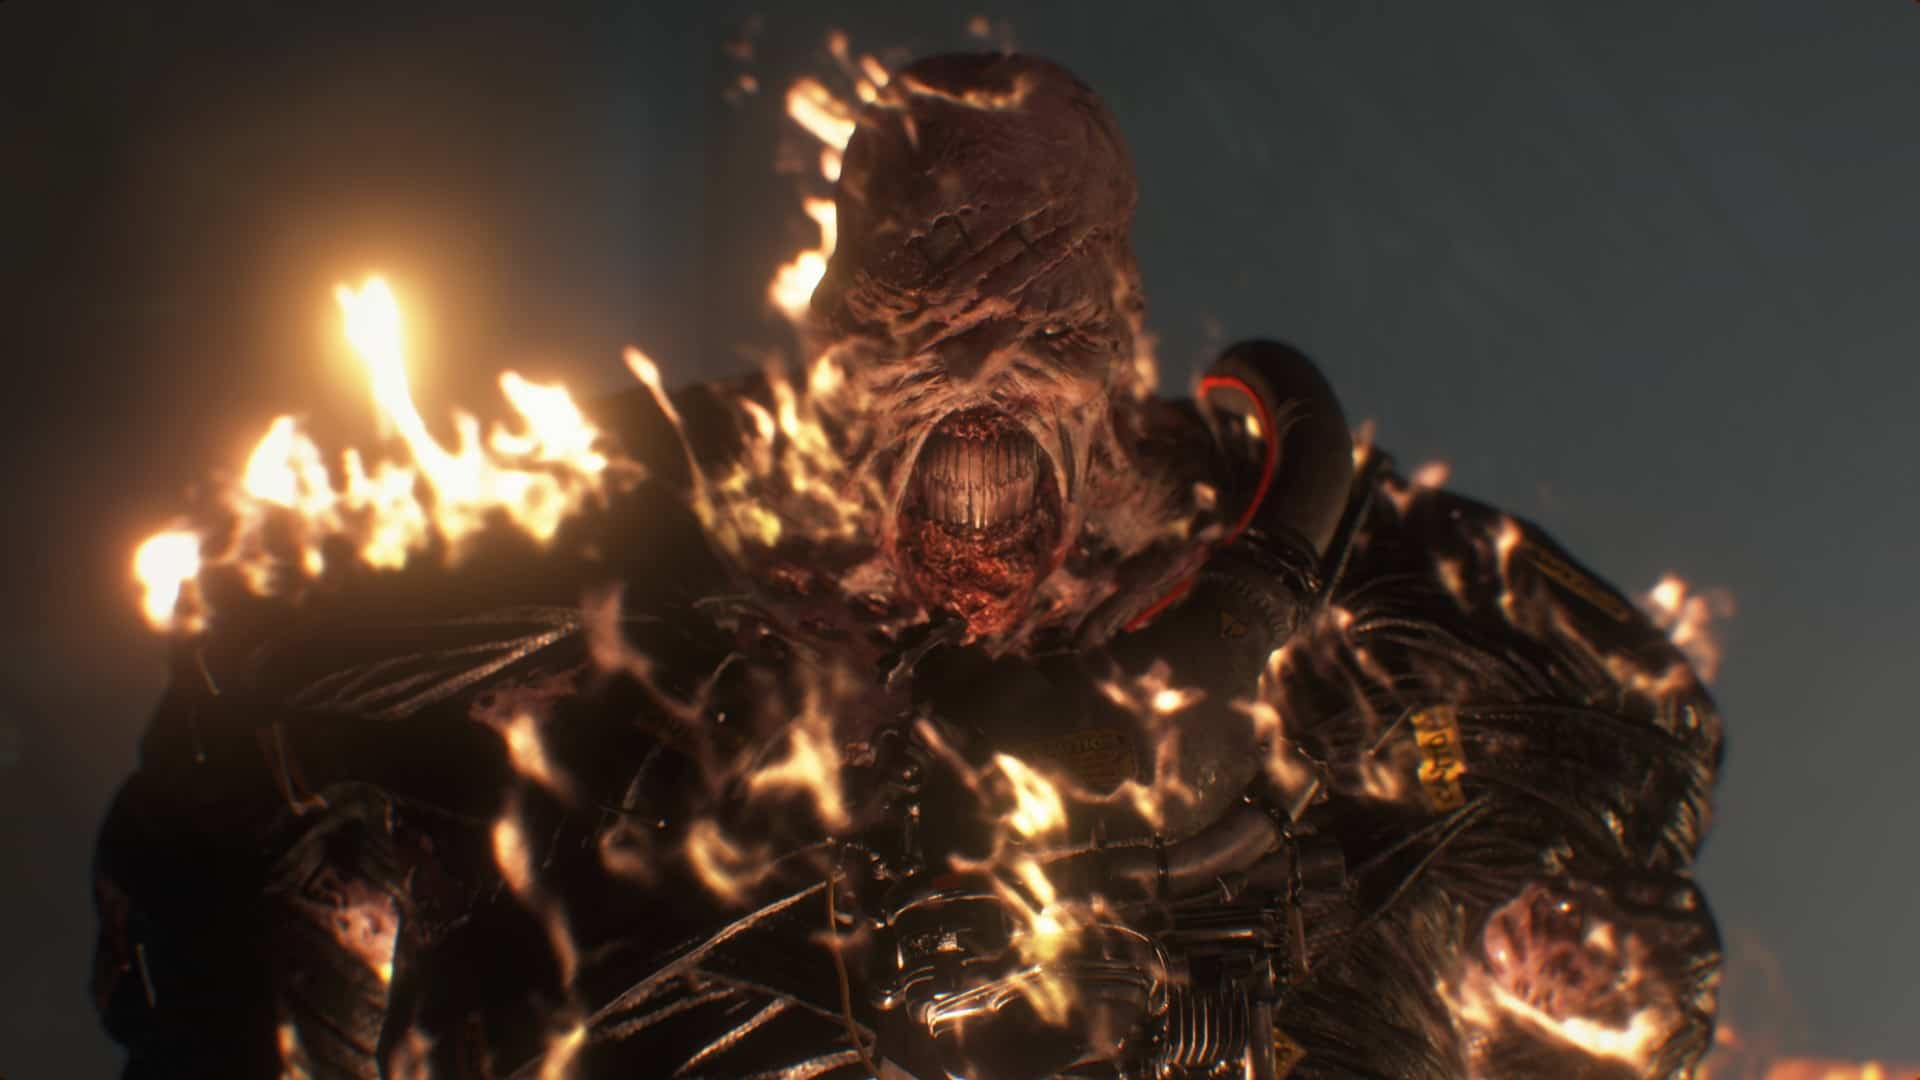 Resident Evil 3 Remake Runs Best On Ps4 Pro Says Report